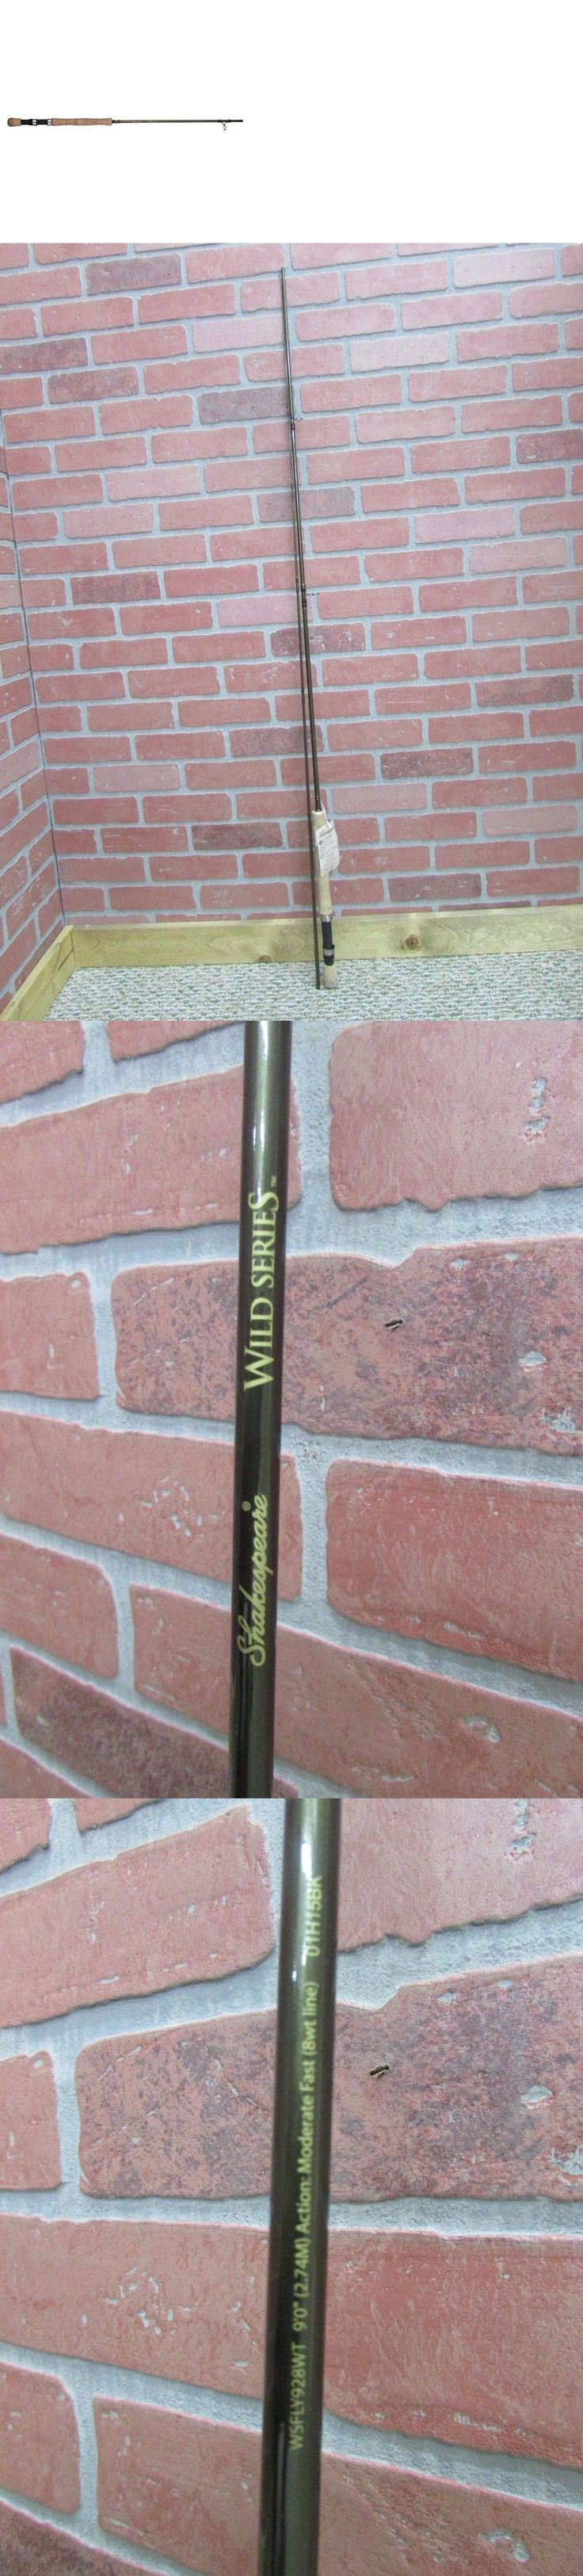 Fly Fishing Rods 23819: Shakespeare Wild 8Wt Fly Rod ~ 2-Piece ~ 9-Feet ~ New ~ Free Shipping BUY IT NOW ONLY: $36.95